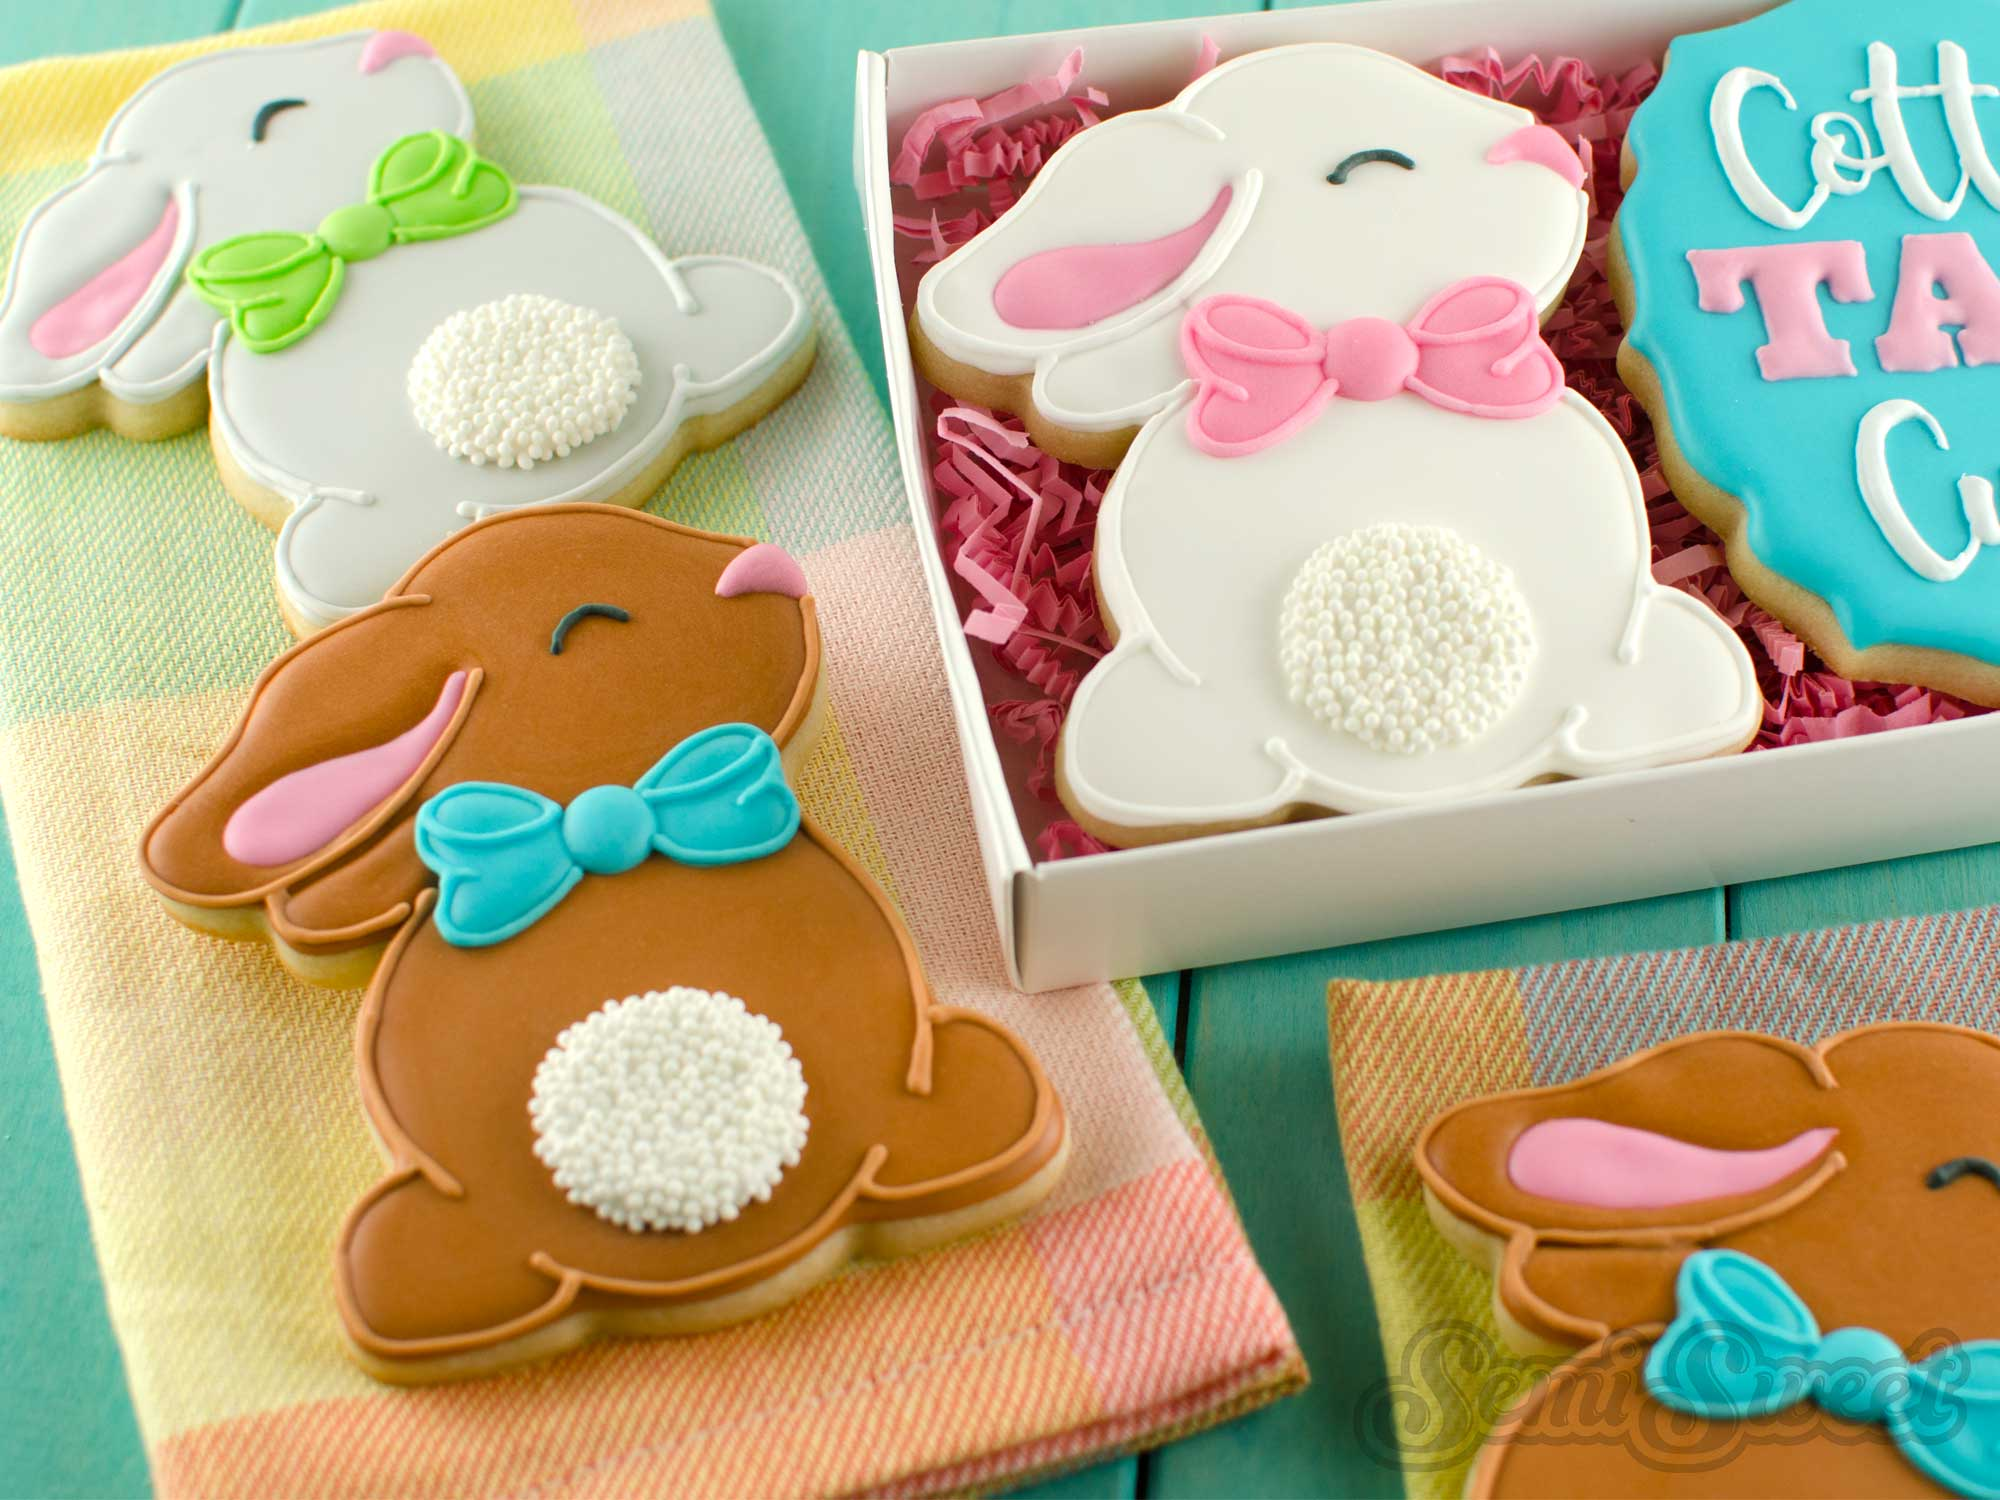 How to Make Cottontail Bunny Cookies by SemiSweetDesigns.com